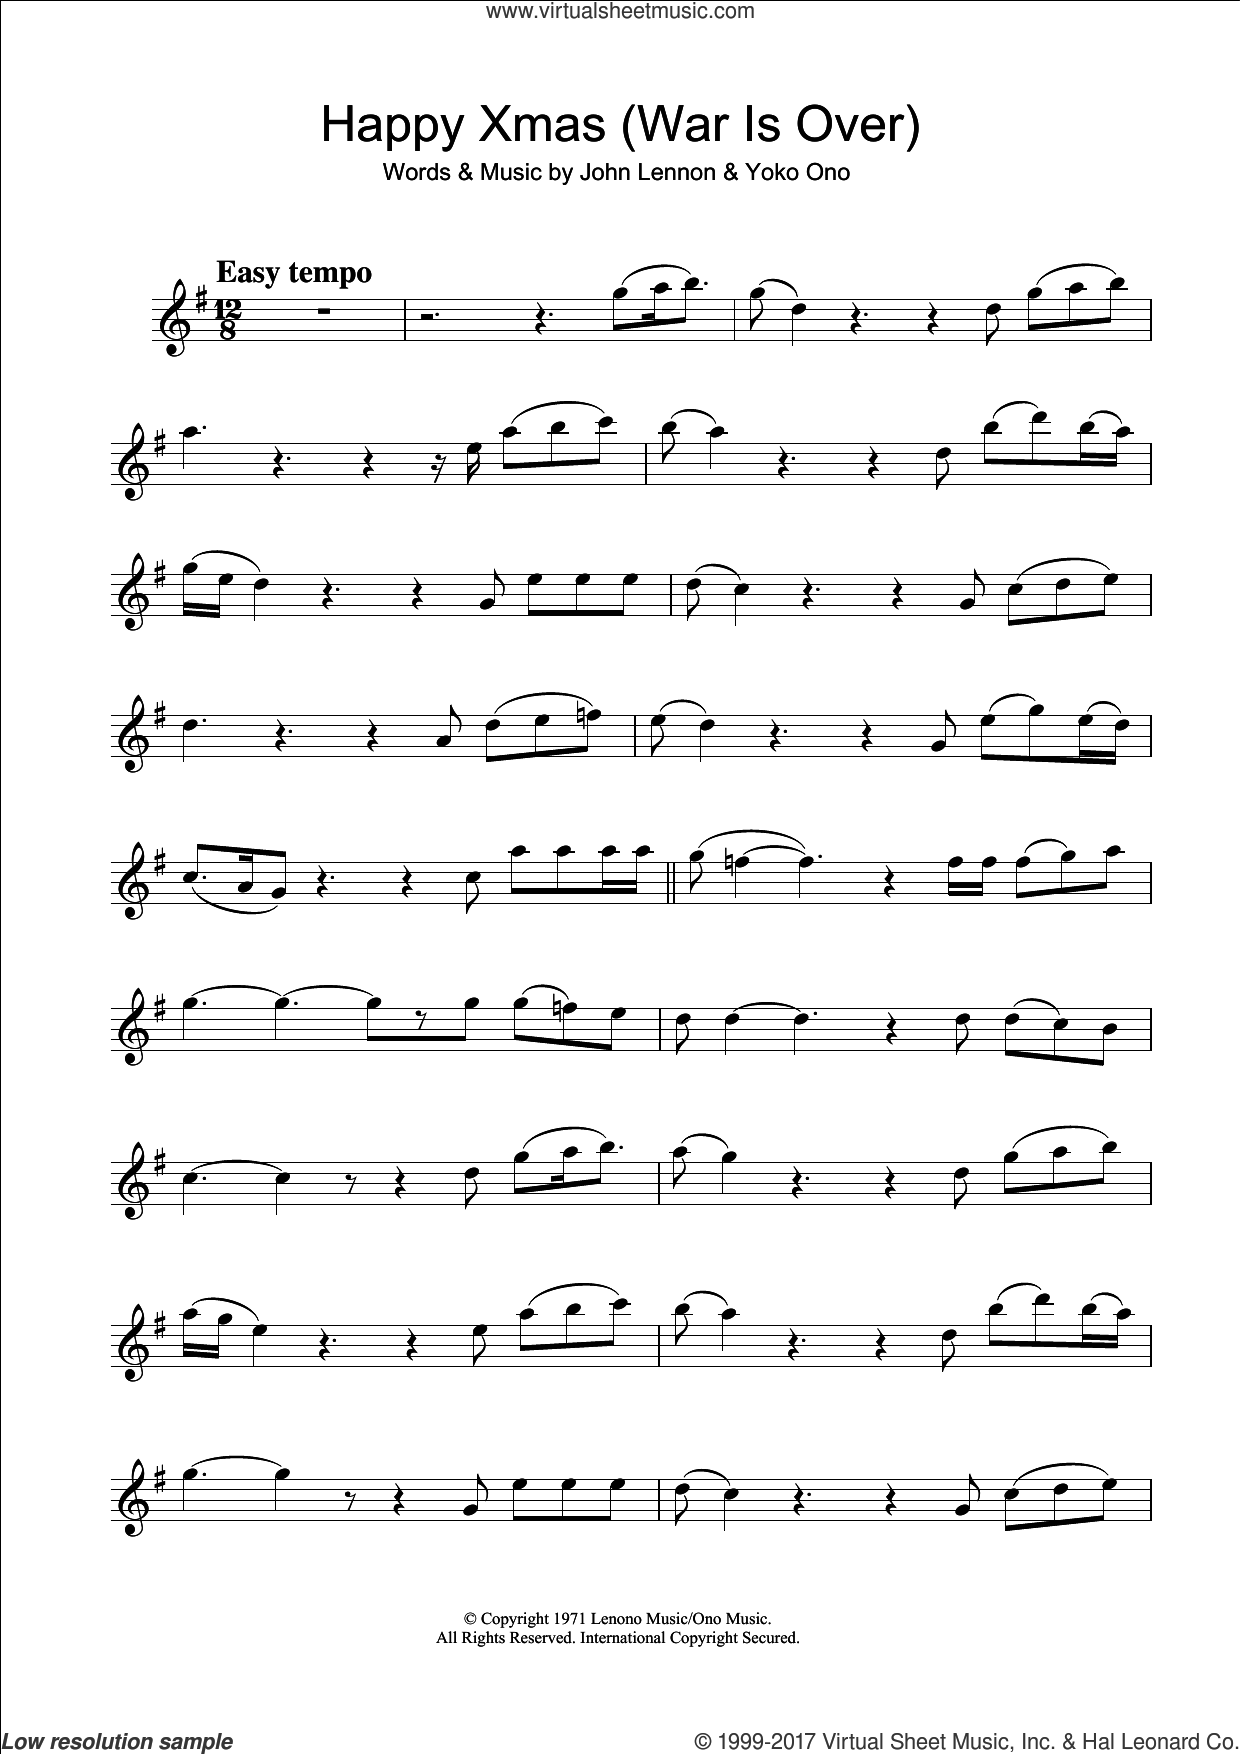 Happy Xmas (War Is Over) sheet music for clarinet solo by John Lennon and Yoko Ono, intermediate skill level